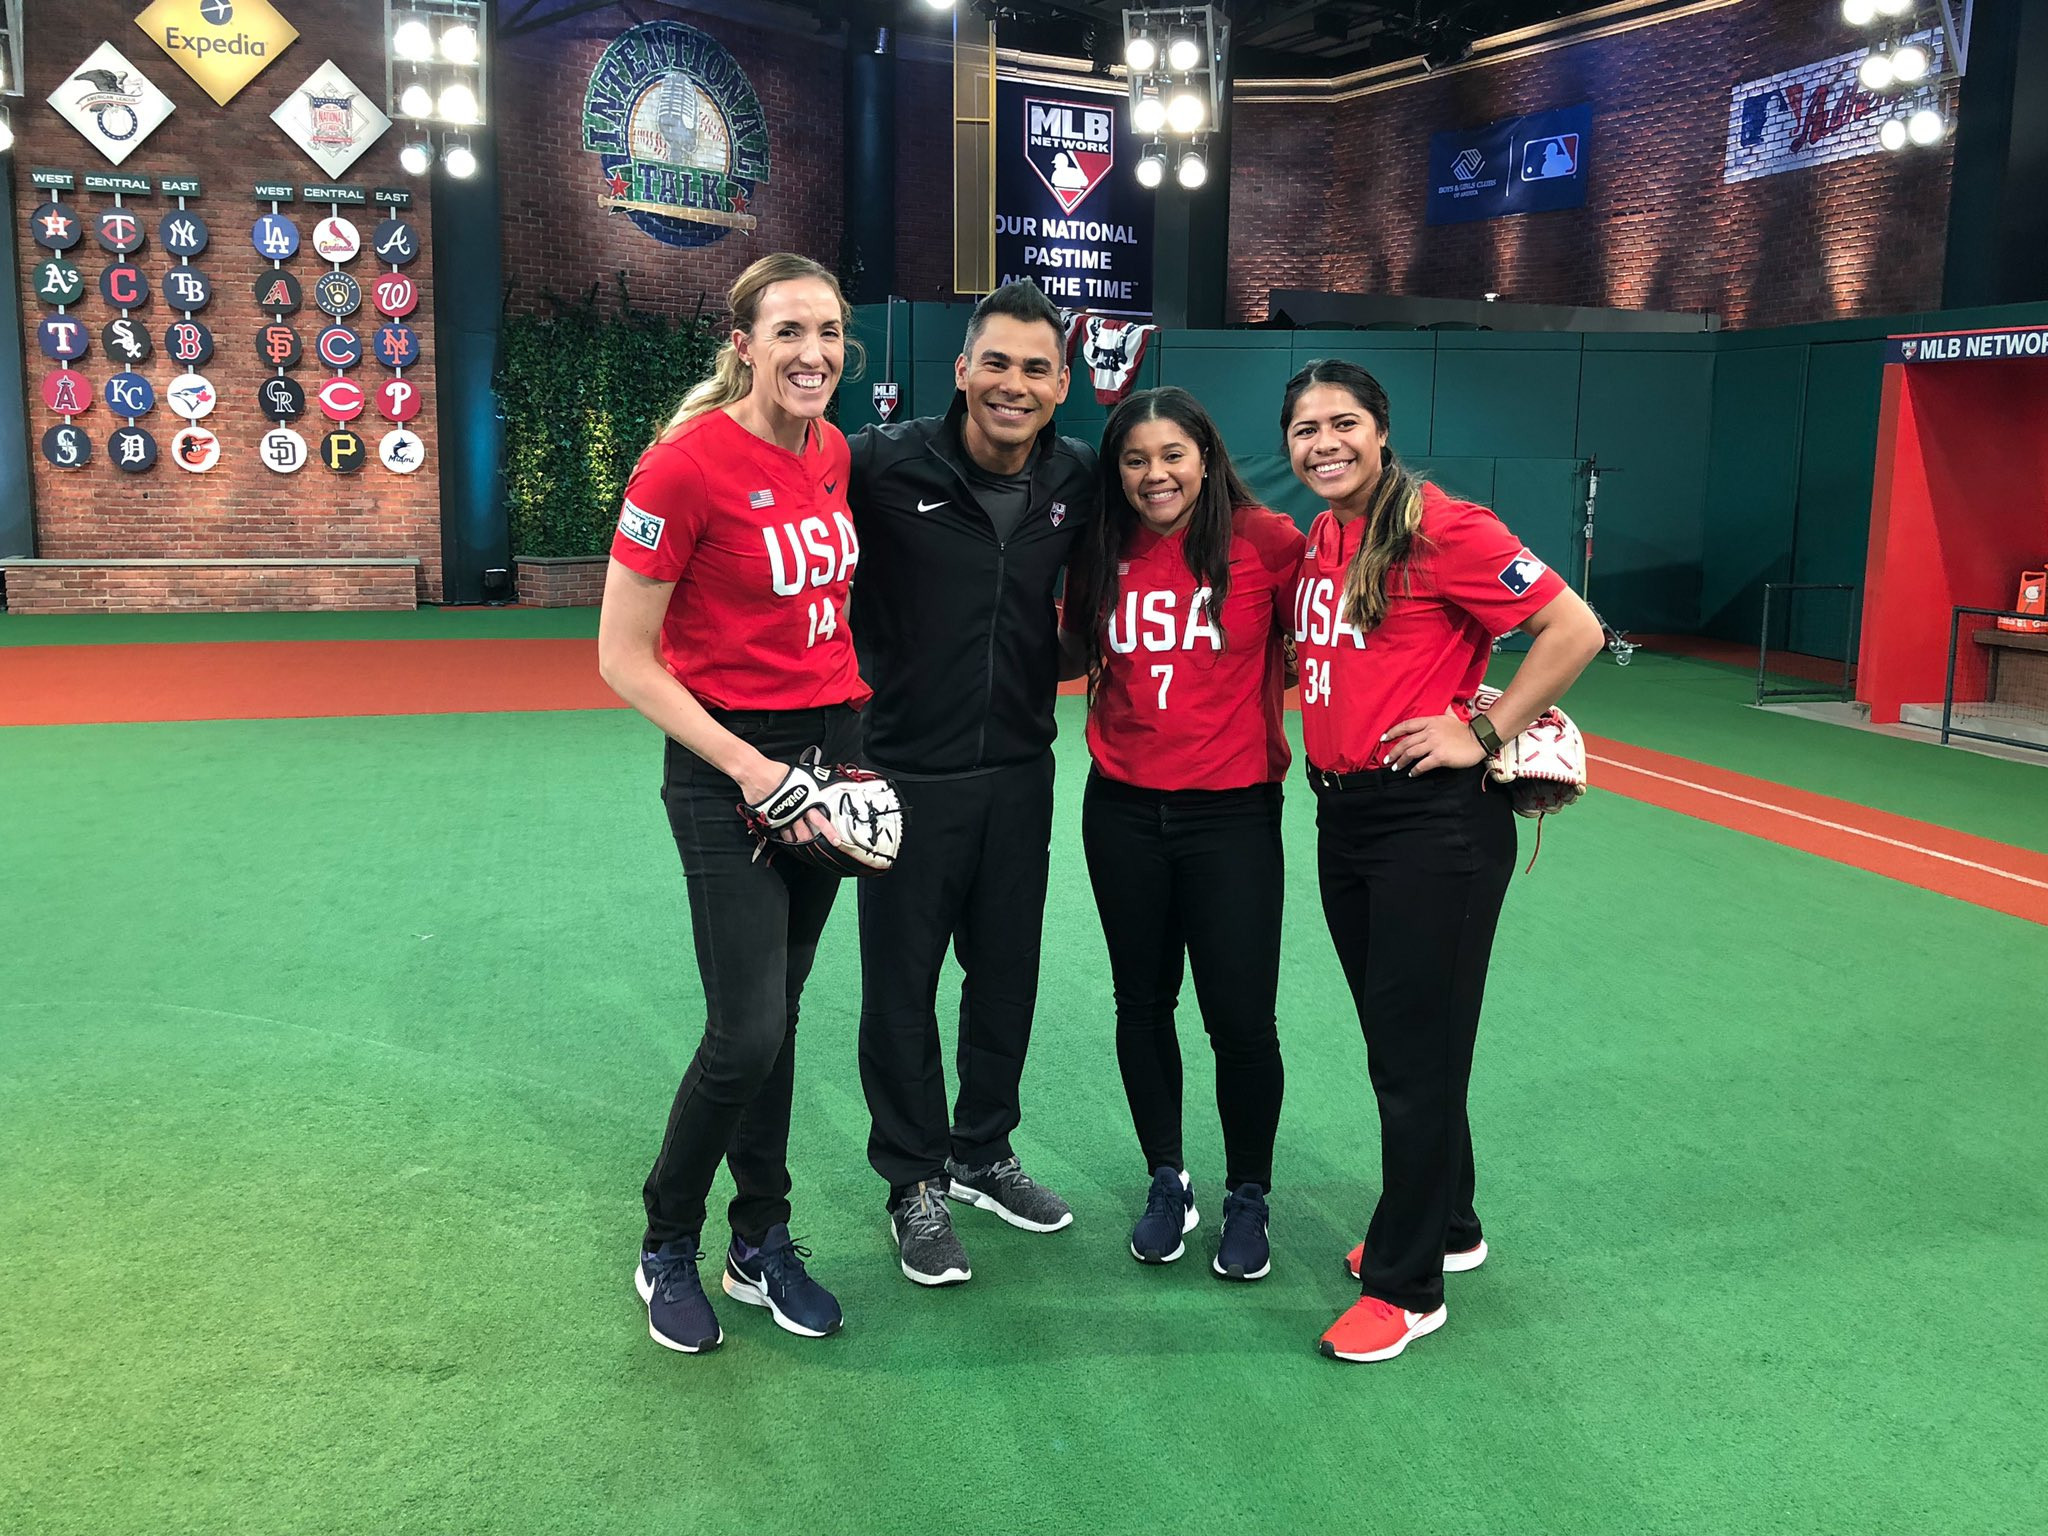 Major League Baseball announced as sponsor of USA Softball pre-Tokyo 2020 tour